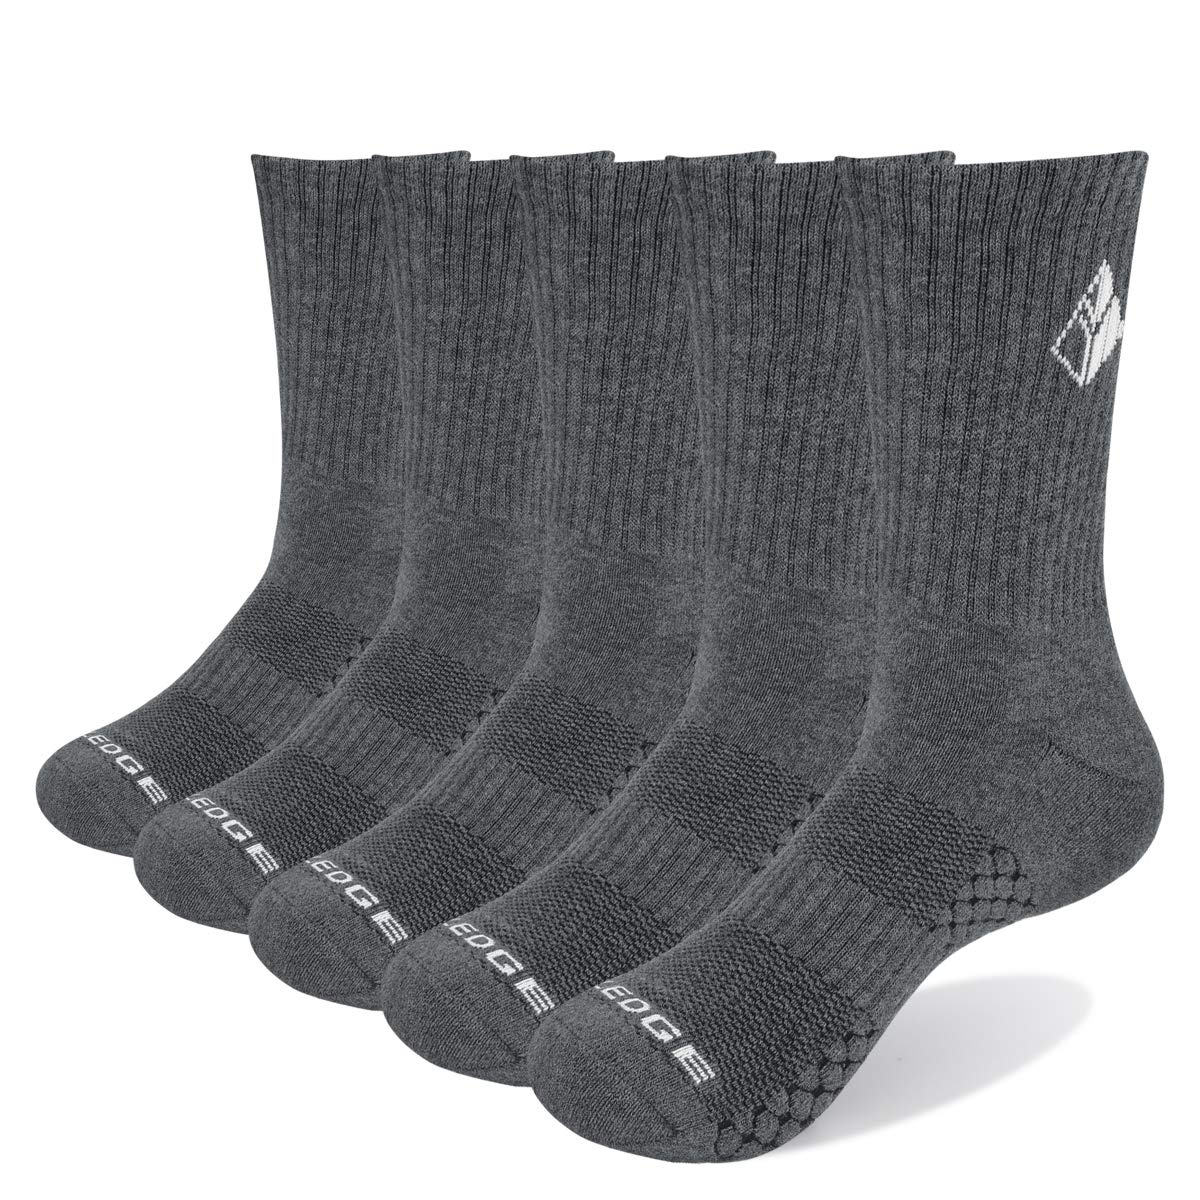 YUEDGE 5 Pairs Women's Performance Cotton Cushion Crew Sports Athletic Hiking Workout Socks(Grey) by YUEDGE